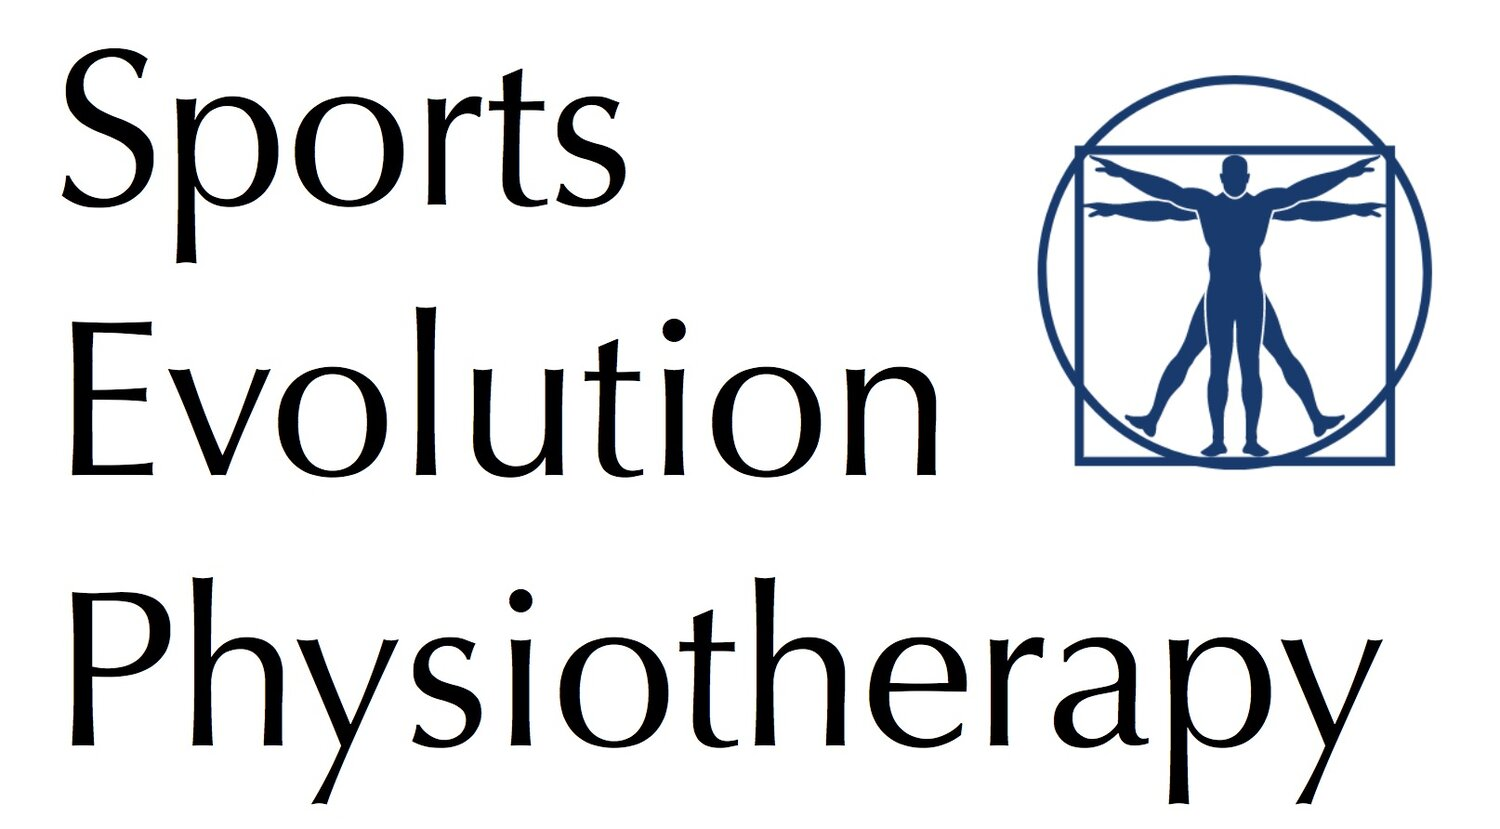 Sports Evolution Physiotherapy